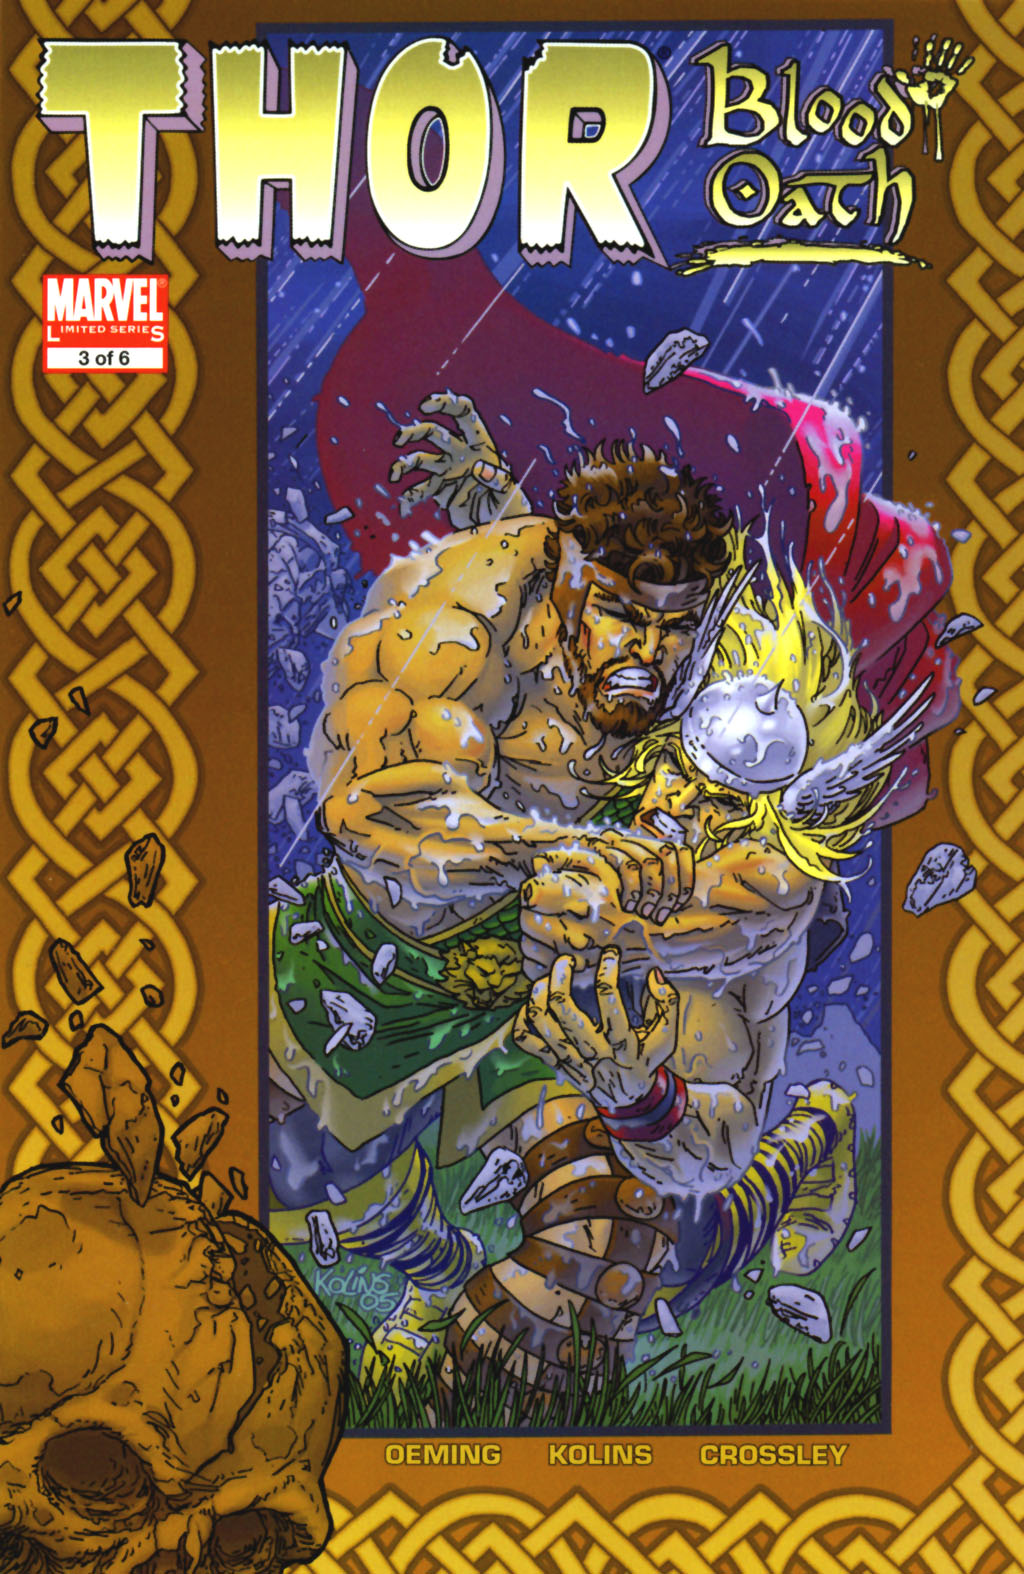 Read online Thor: Blood Oath comic -  Issue #3 - 1